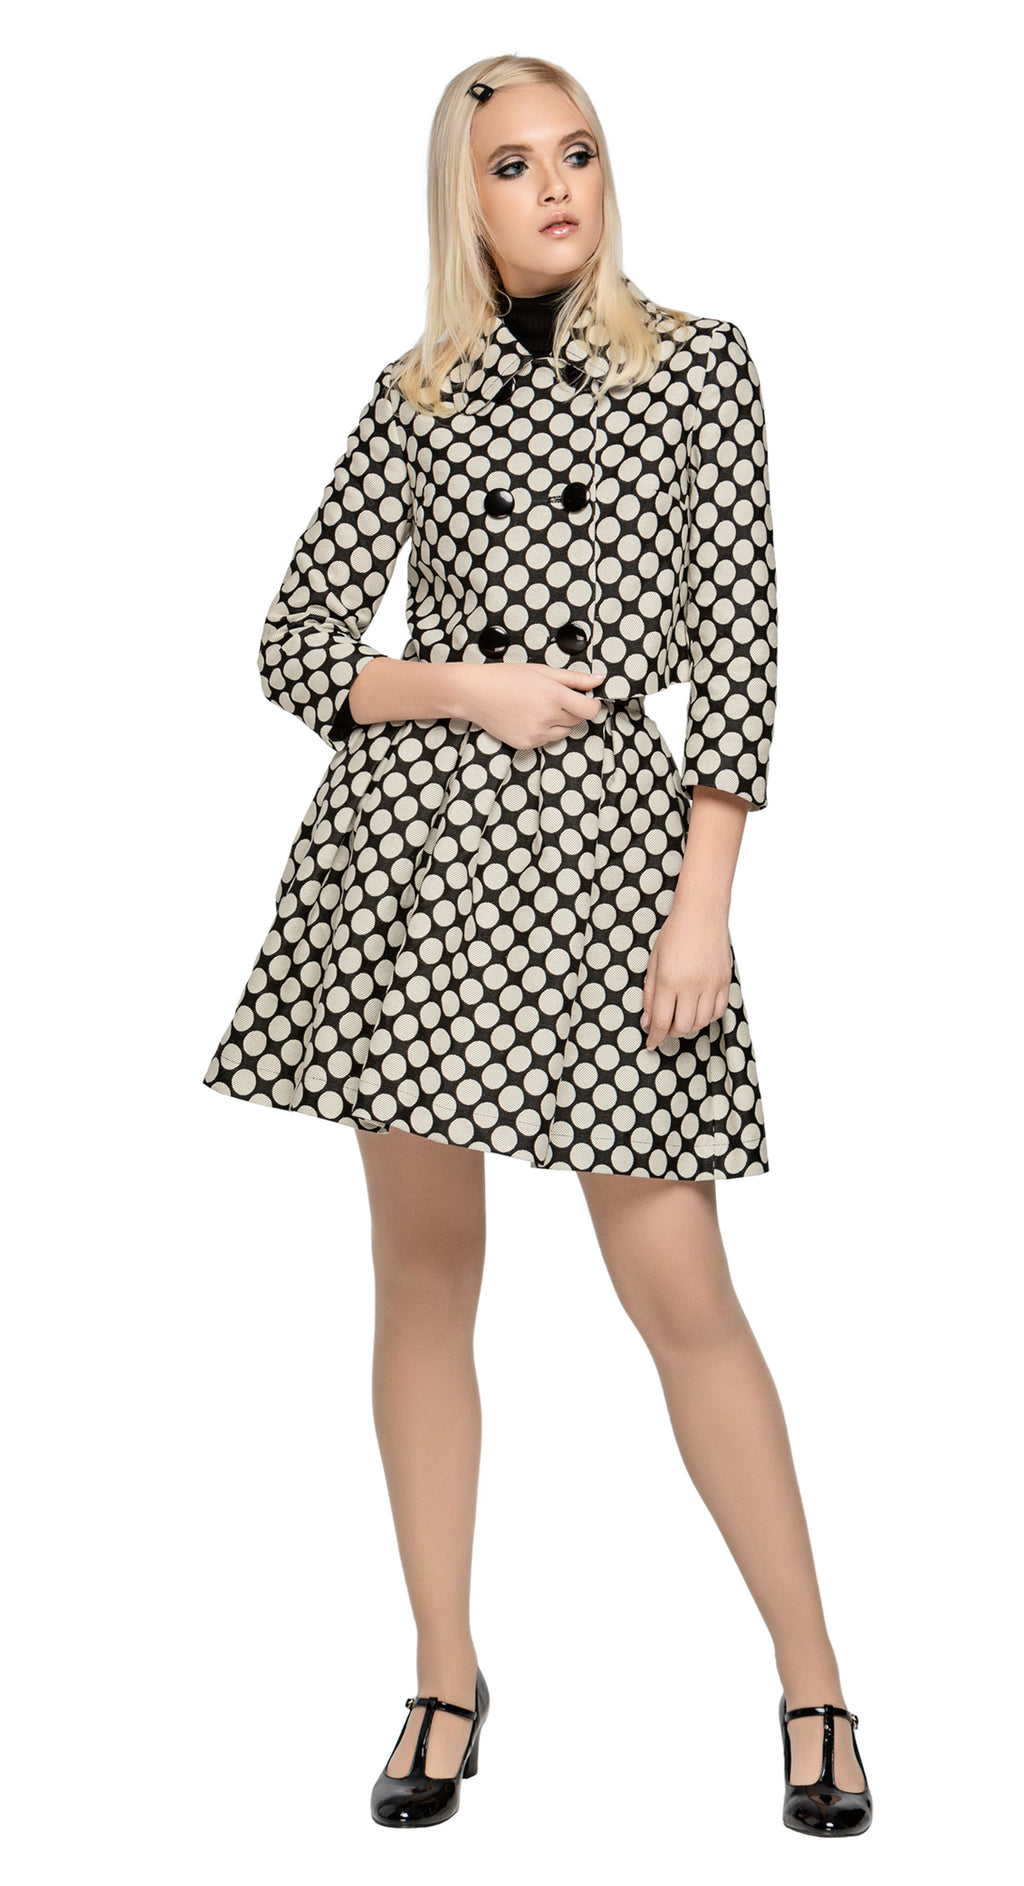 Retro style, fitted French weave polka dot fair weather cropped jacket with detachable bow. A striking fabric in both quality and appearance compliment the timeless fit.  This jacket is fully lined with eight button front panel closure.  Pairs perfectly with our Polka Dot Skirt or our Circle Cutout Dress to create an impacting fun and stylish high fashion skirt/dress and coat set